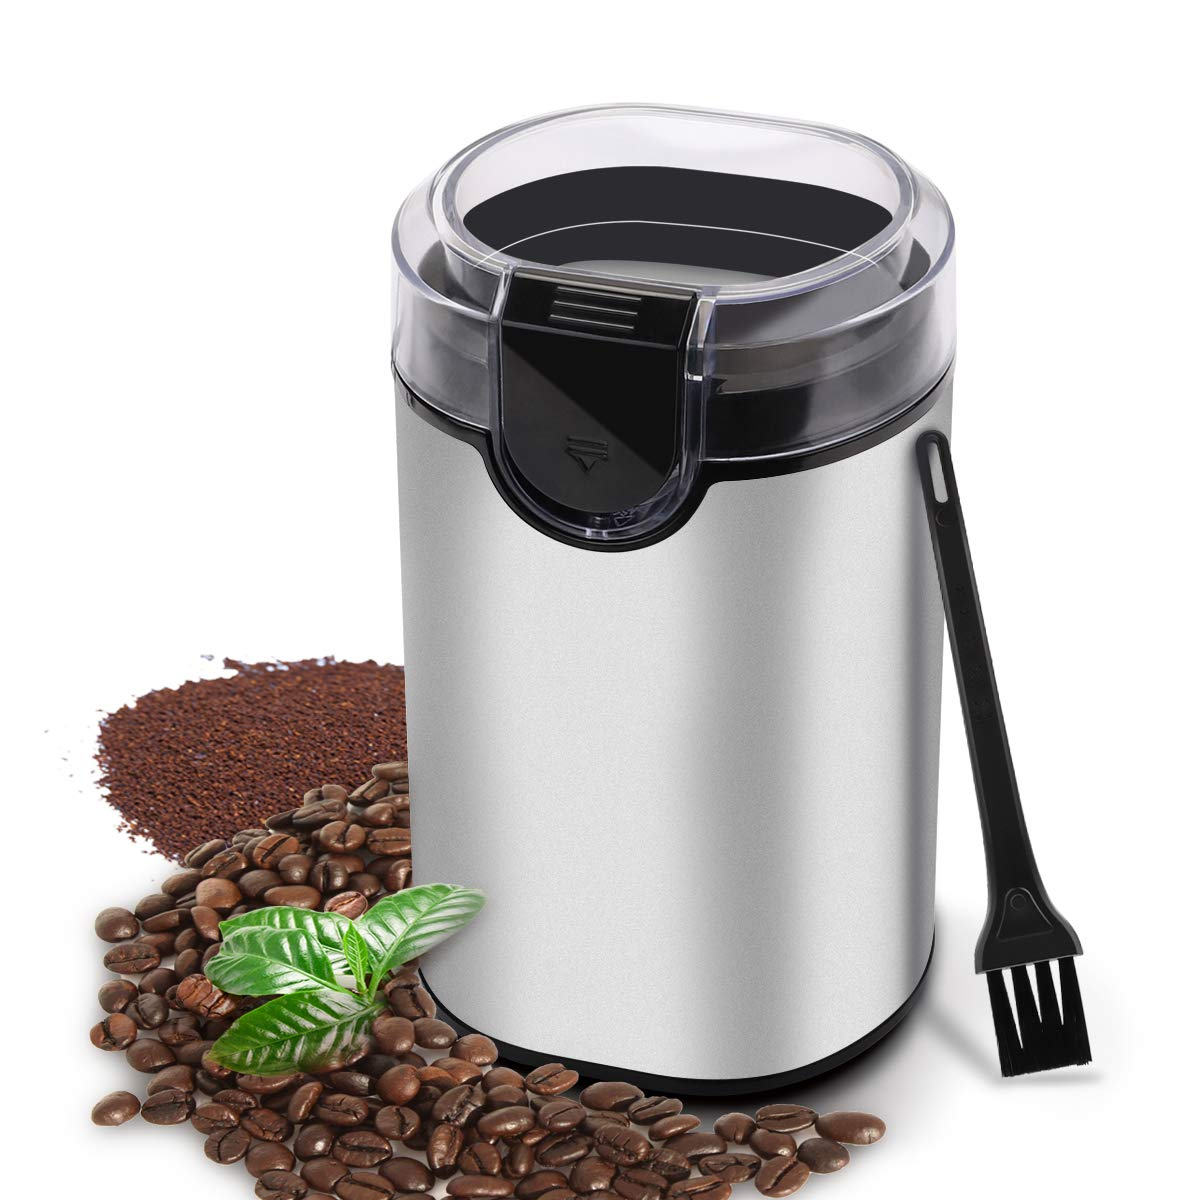 Morpilot Electric Coffee Grinder with 304 Stainless Steel Blades - Silver